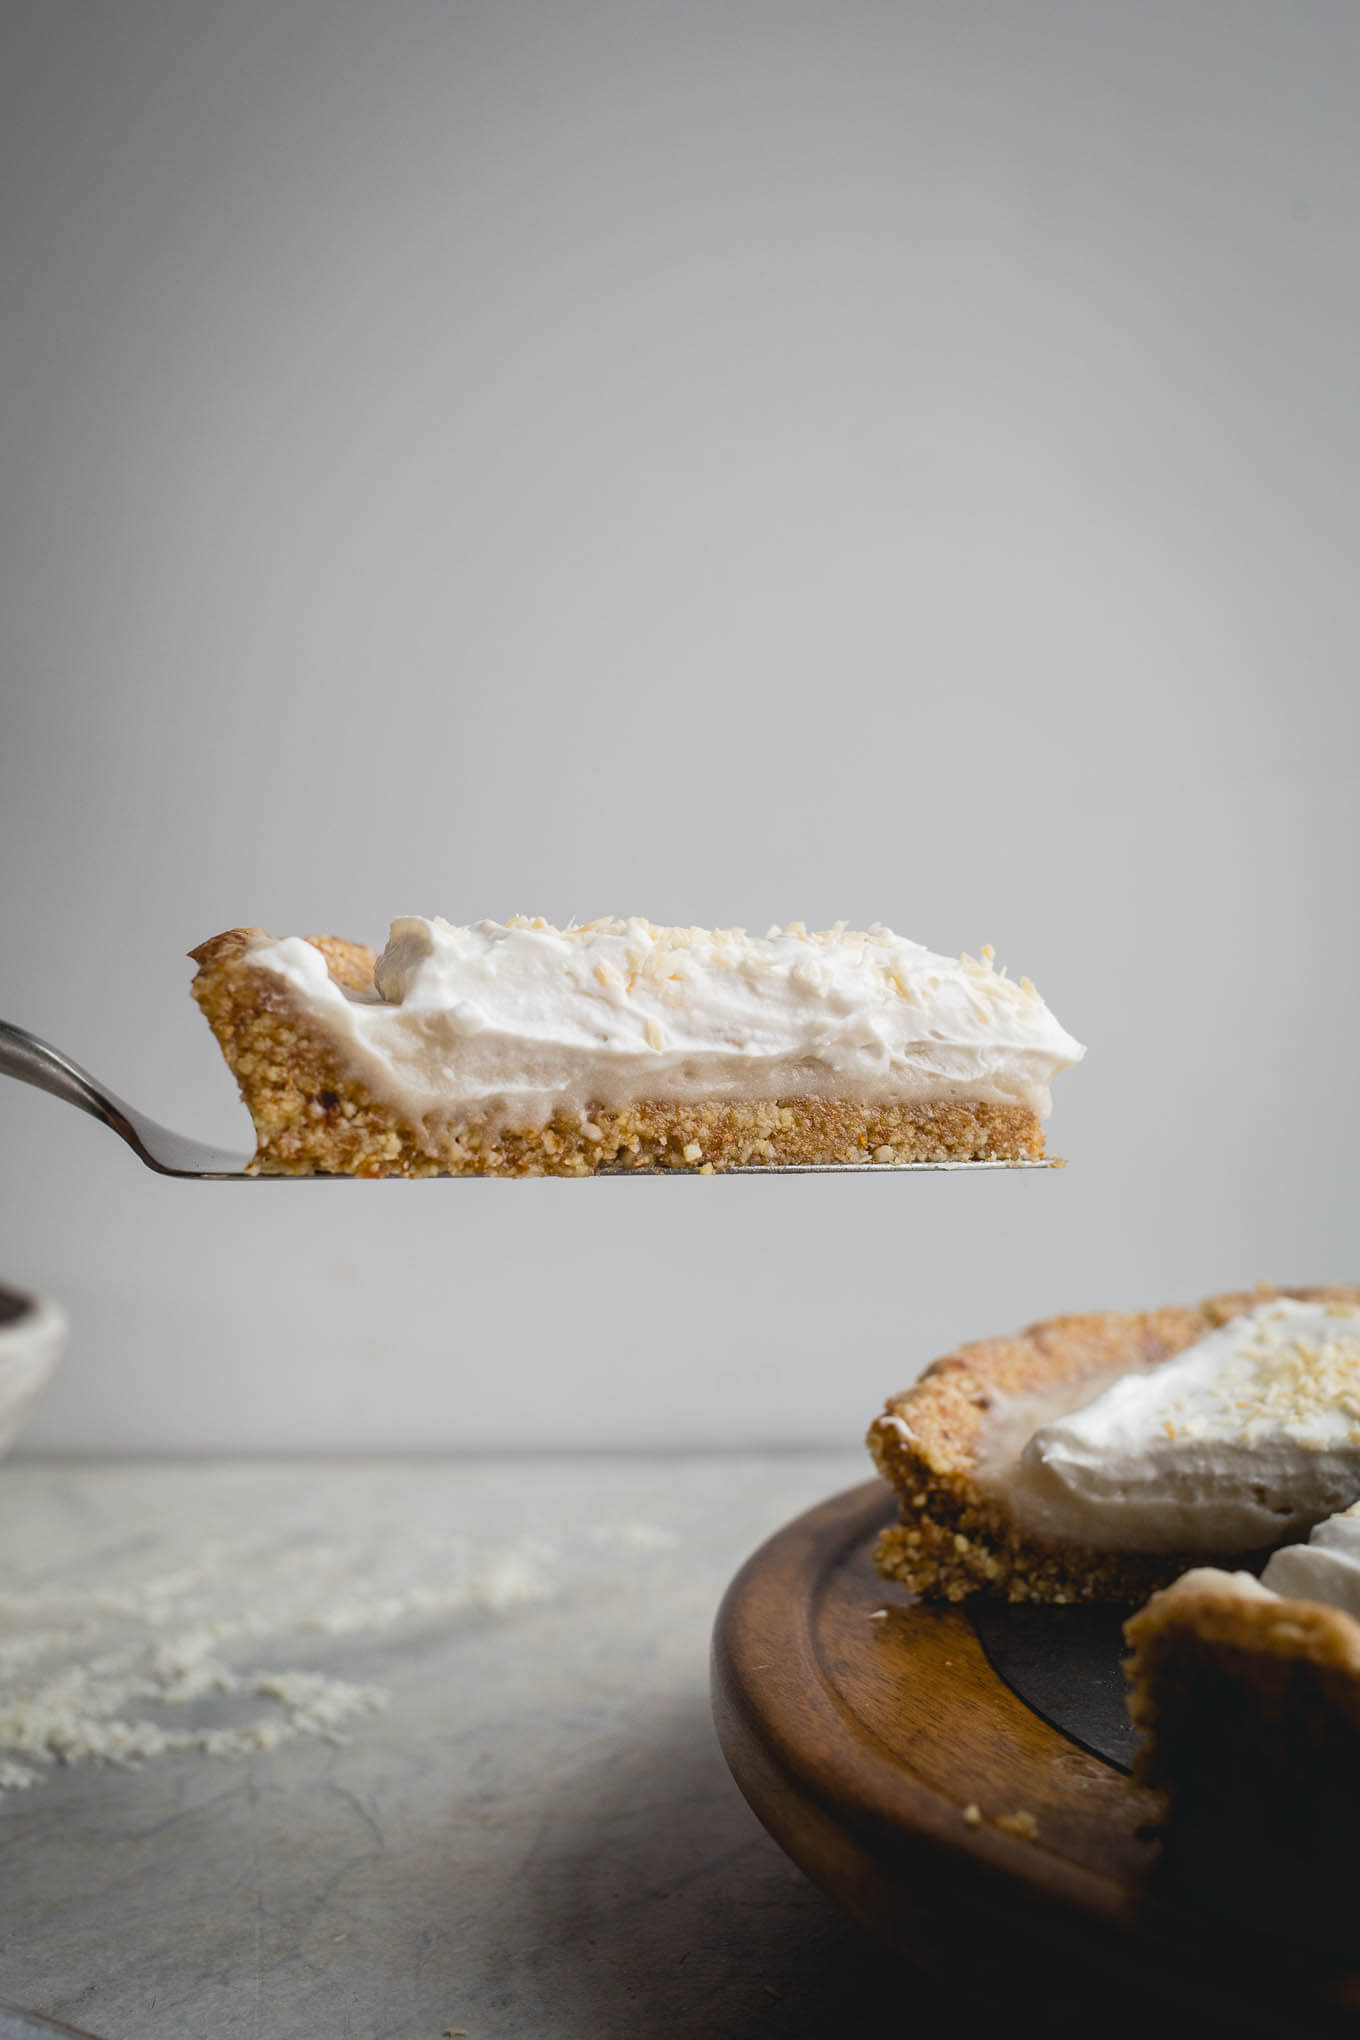 This No-Bake Coconut Cream Pie is made with a sprouted almond press-in crust, coconut milk pudding filling, and topped coconut cream and toasted shredded coconut. Gluten-free, vegan.